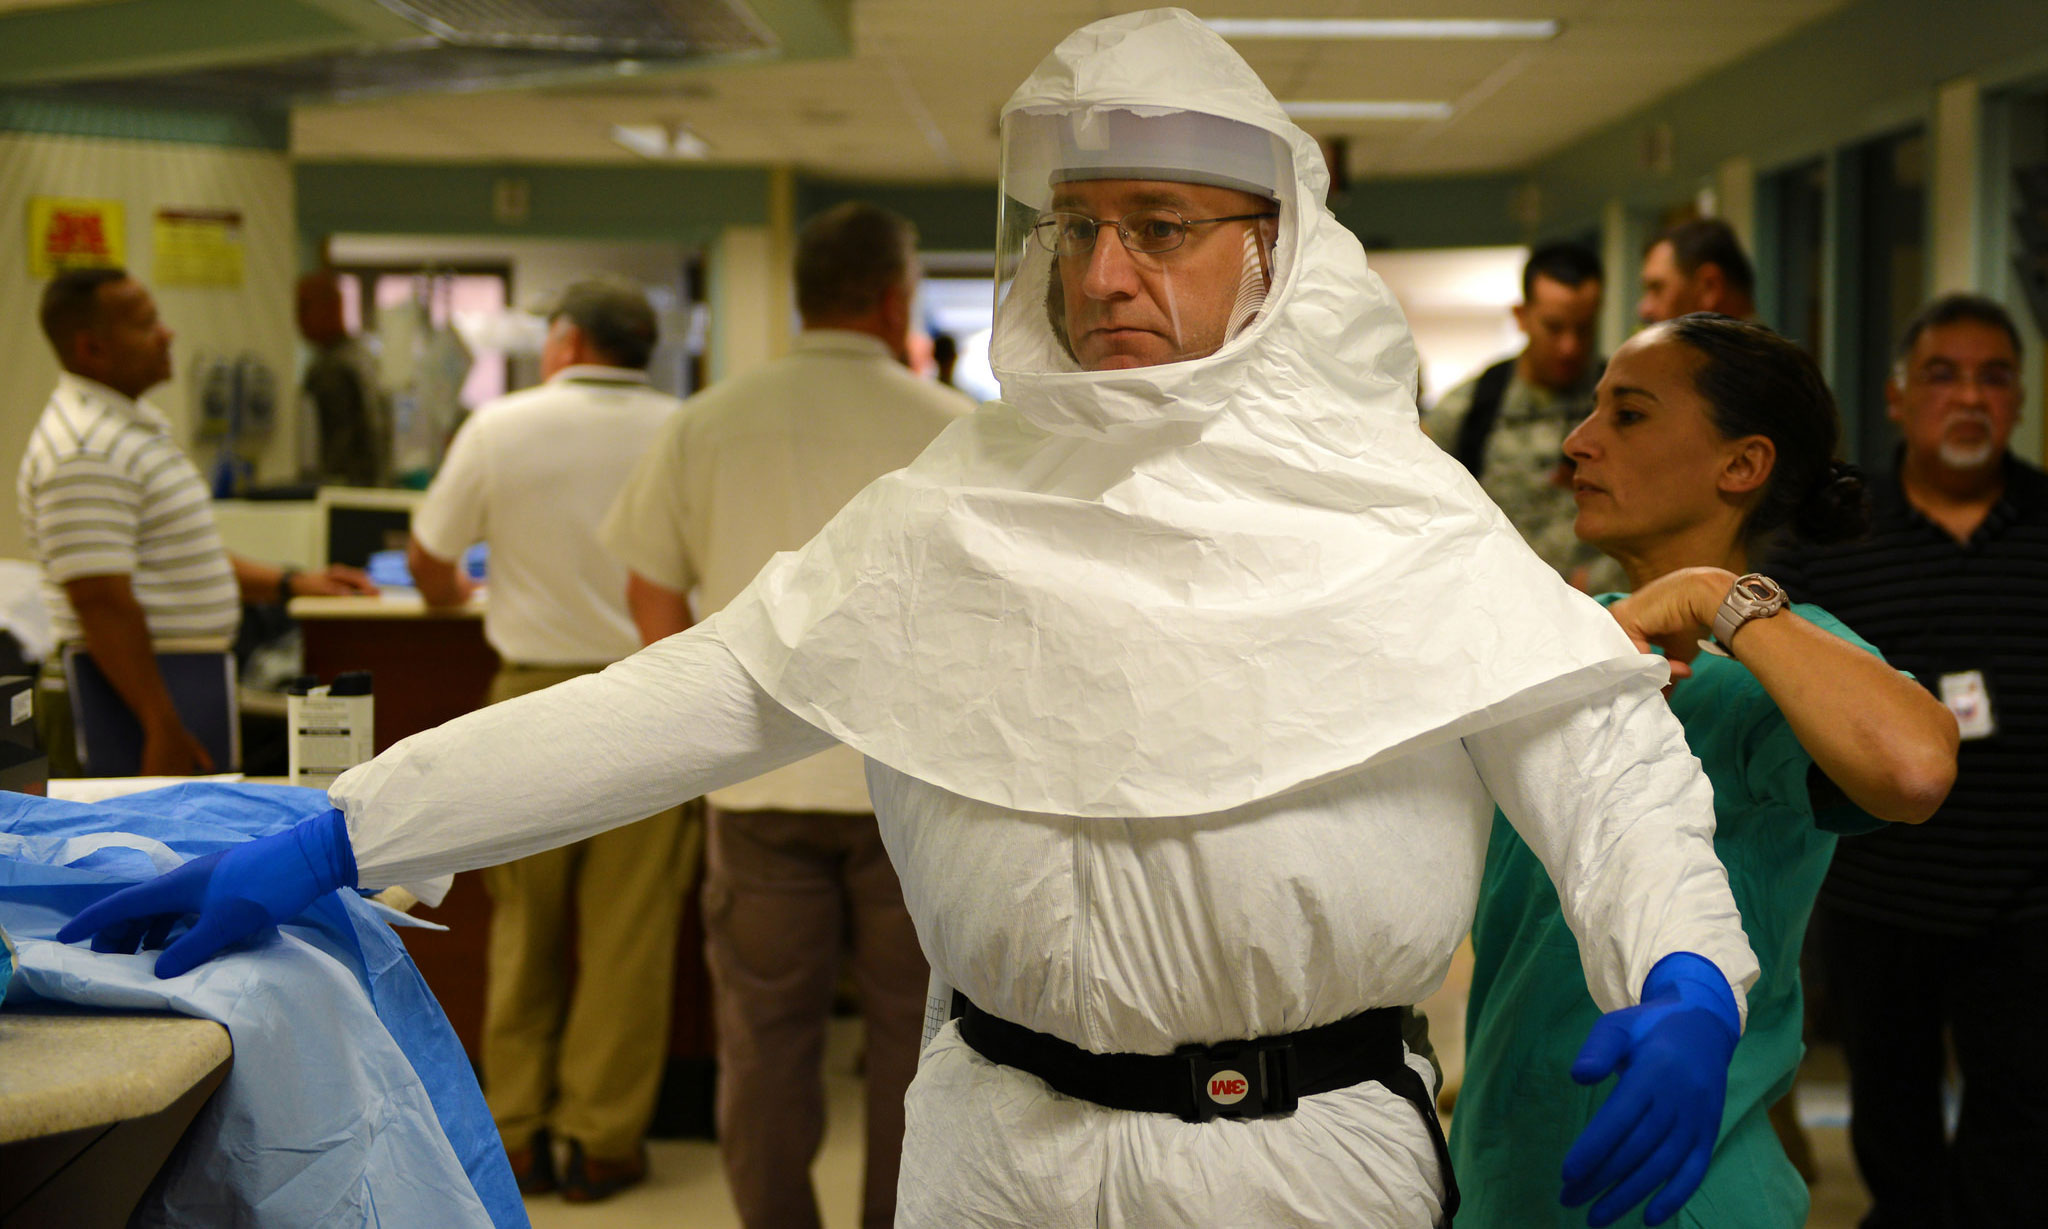 Students prepare for the next phase of Ebola response training at the San Antonio Military Medical Center in San Antonio, Texas, Oct. 24, 2014. The students are part of a 30-person medical support team designated for prepare to deploy in the event of an Ebola crisis in the U.S. DoD photo by Army Sgt. 1st Class Tyrone C. Marshall Jr, via Creative Commons license on Flickr.